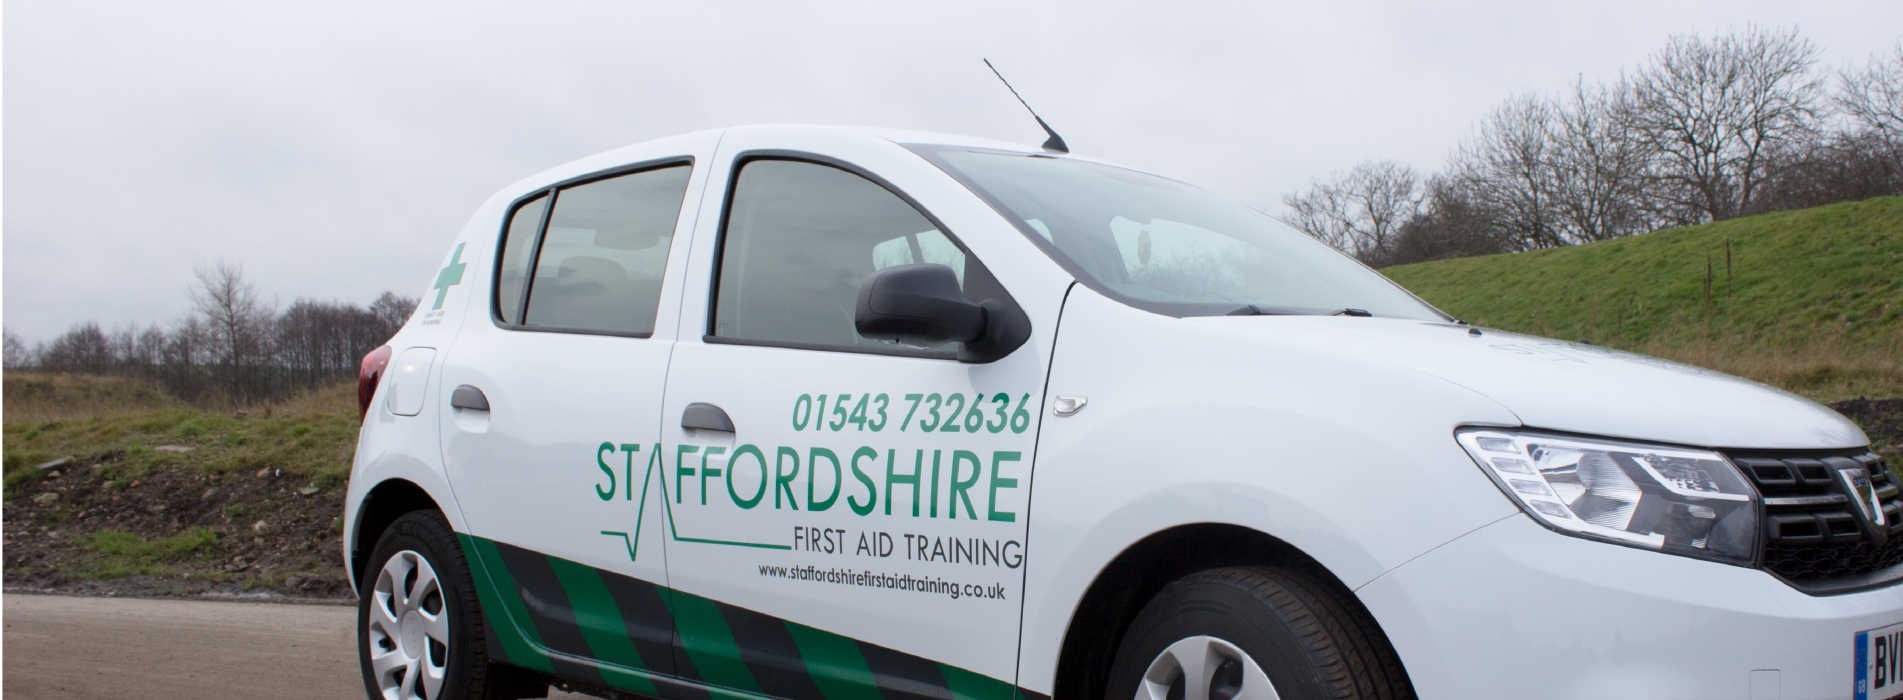 Chasetown first aid training